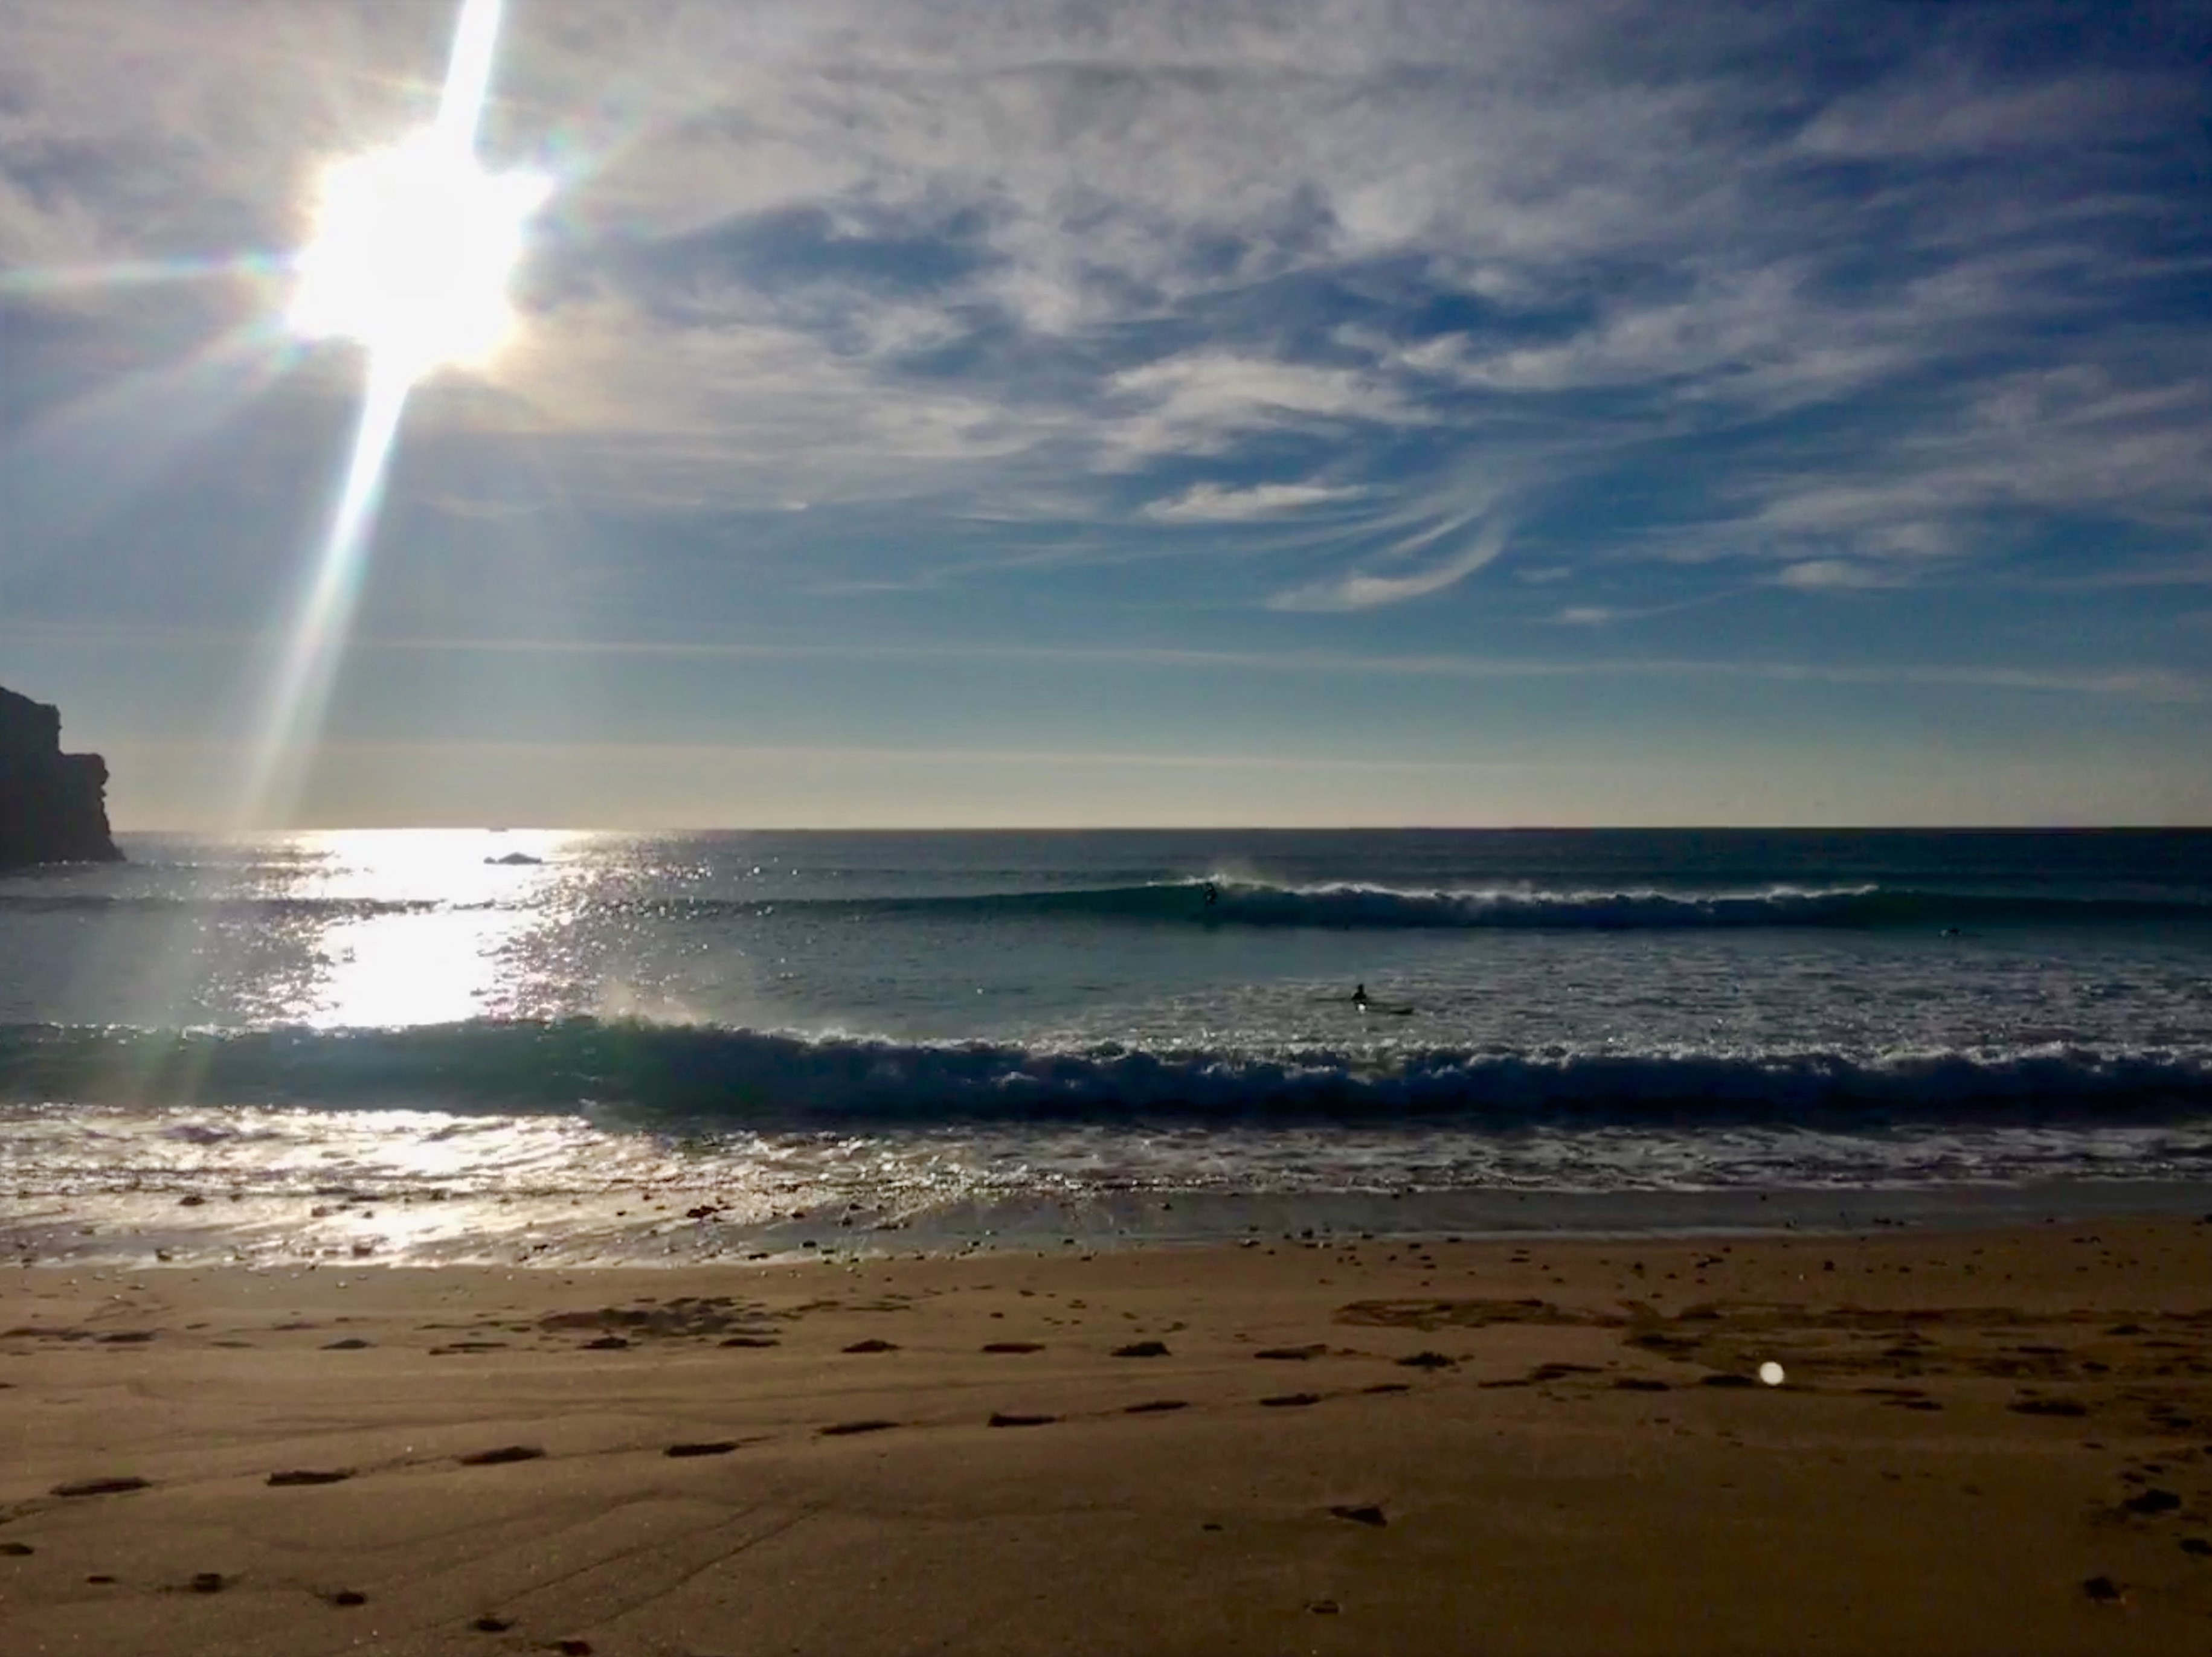 sunny days, offshore breeze, surf in the algarve in winter is the best